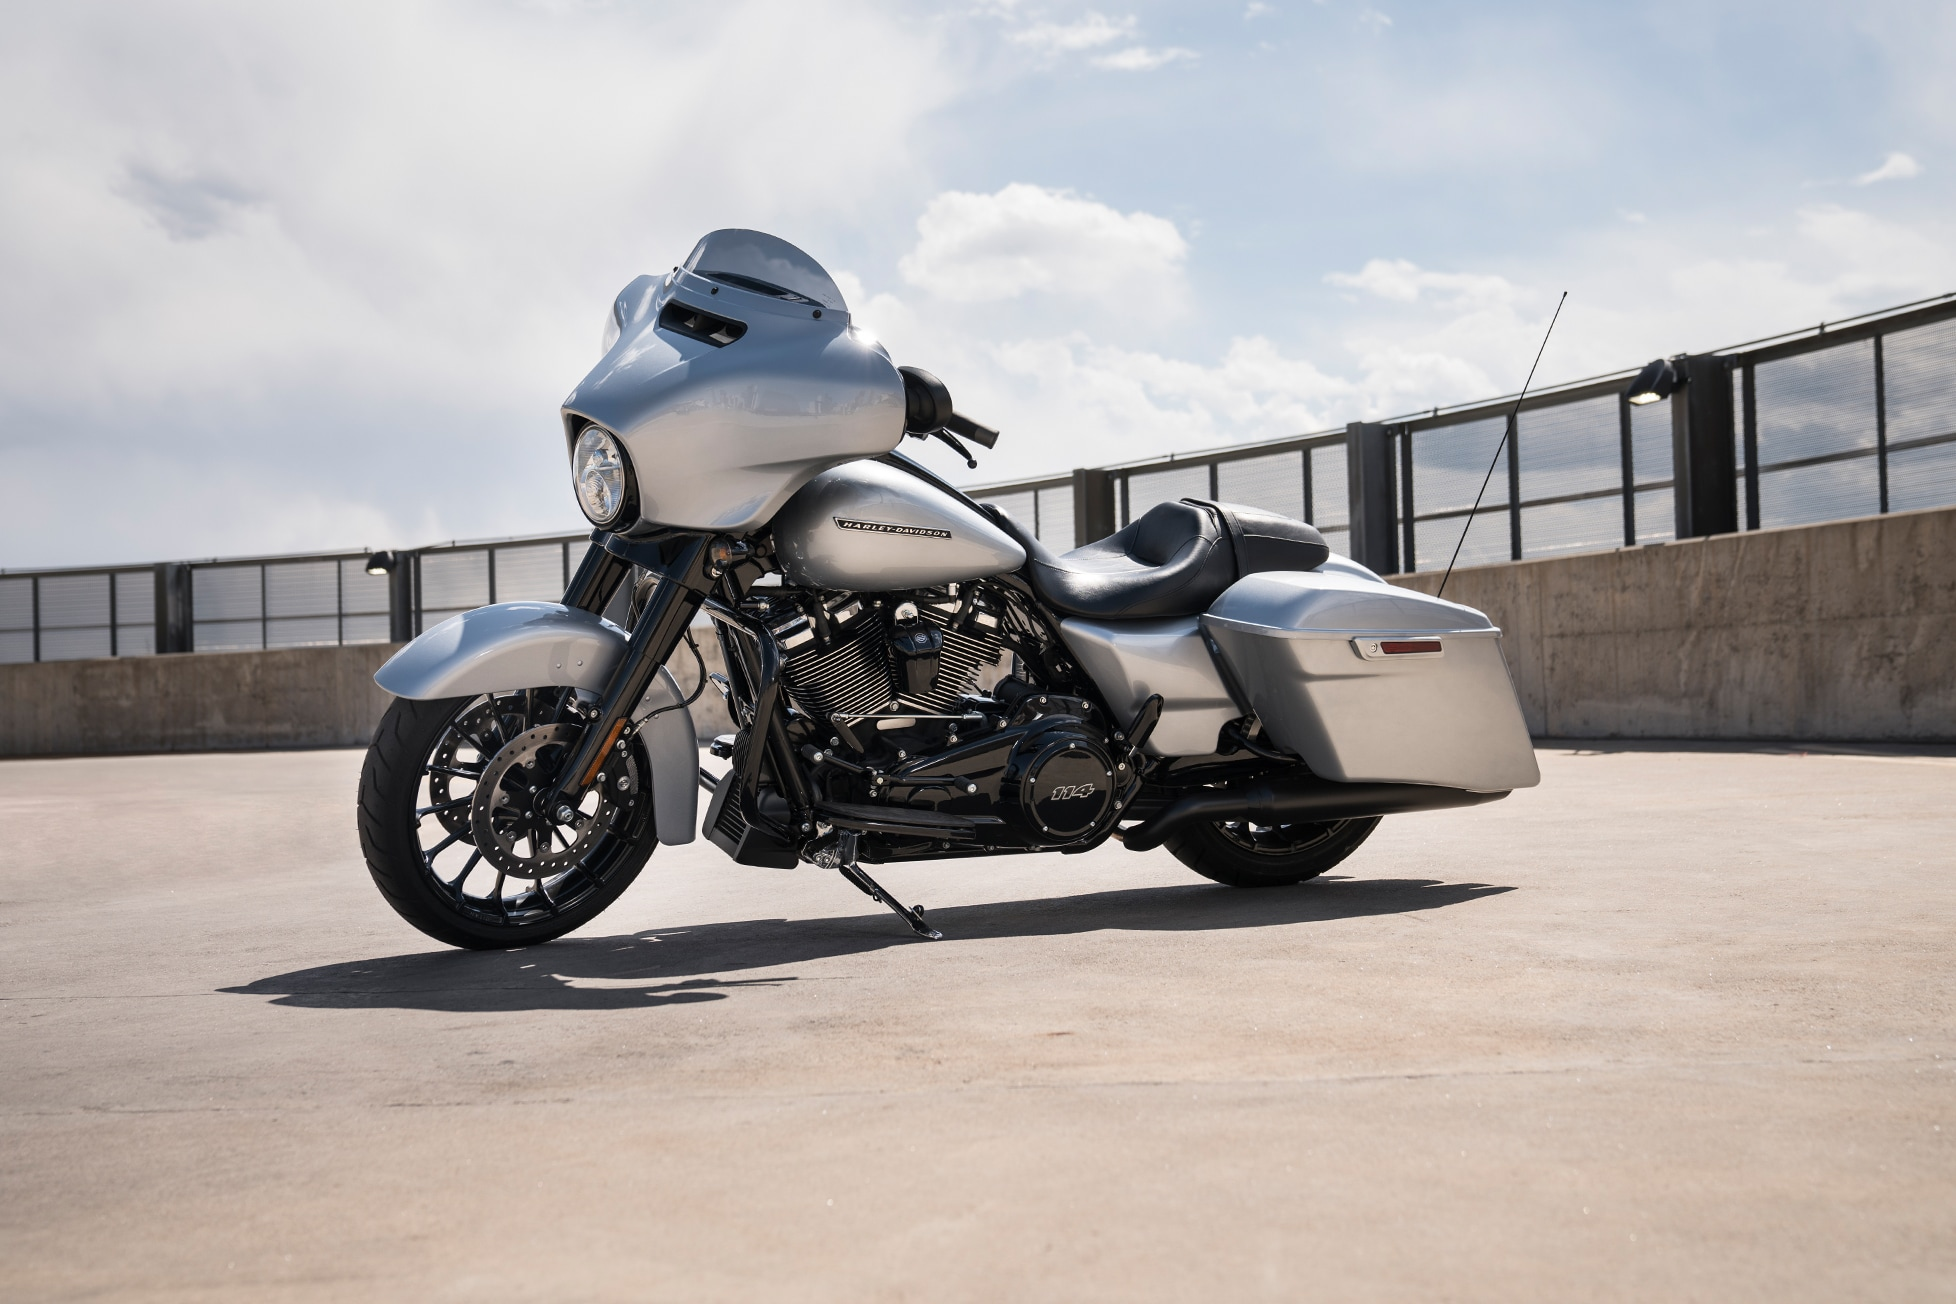 hight resolution of 2019 street glide special parked on street